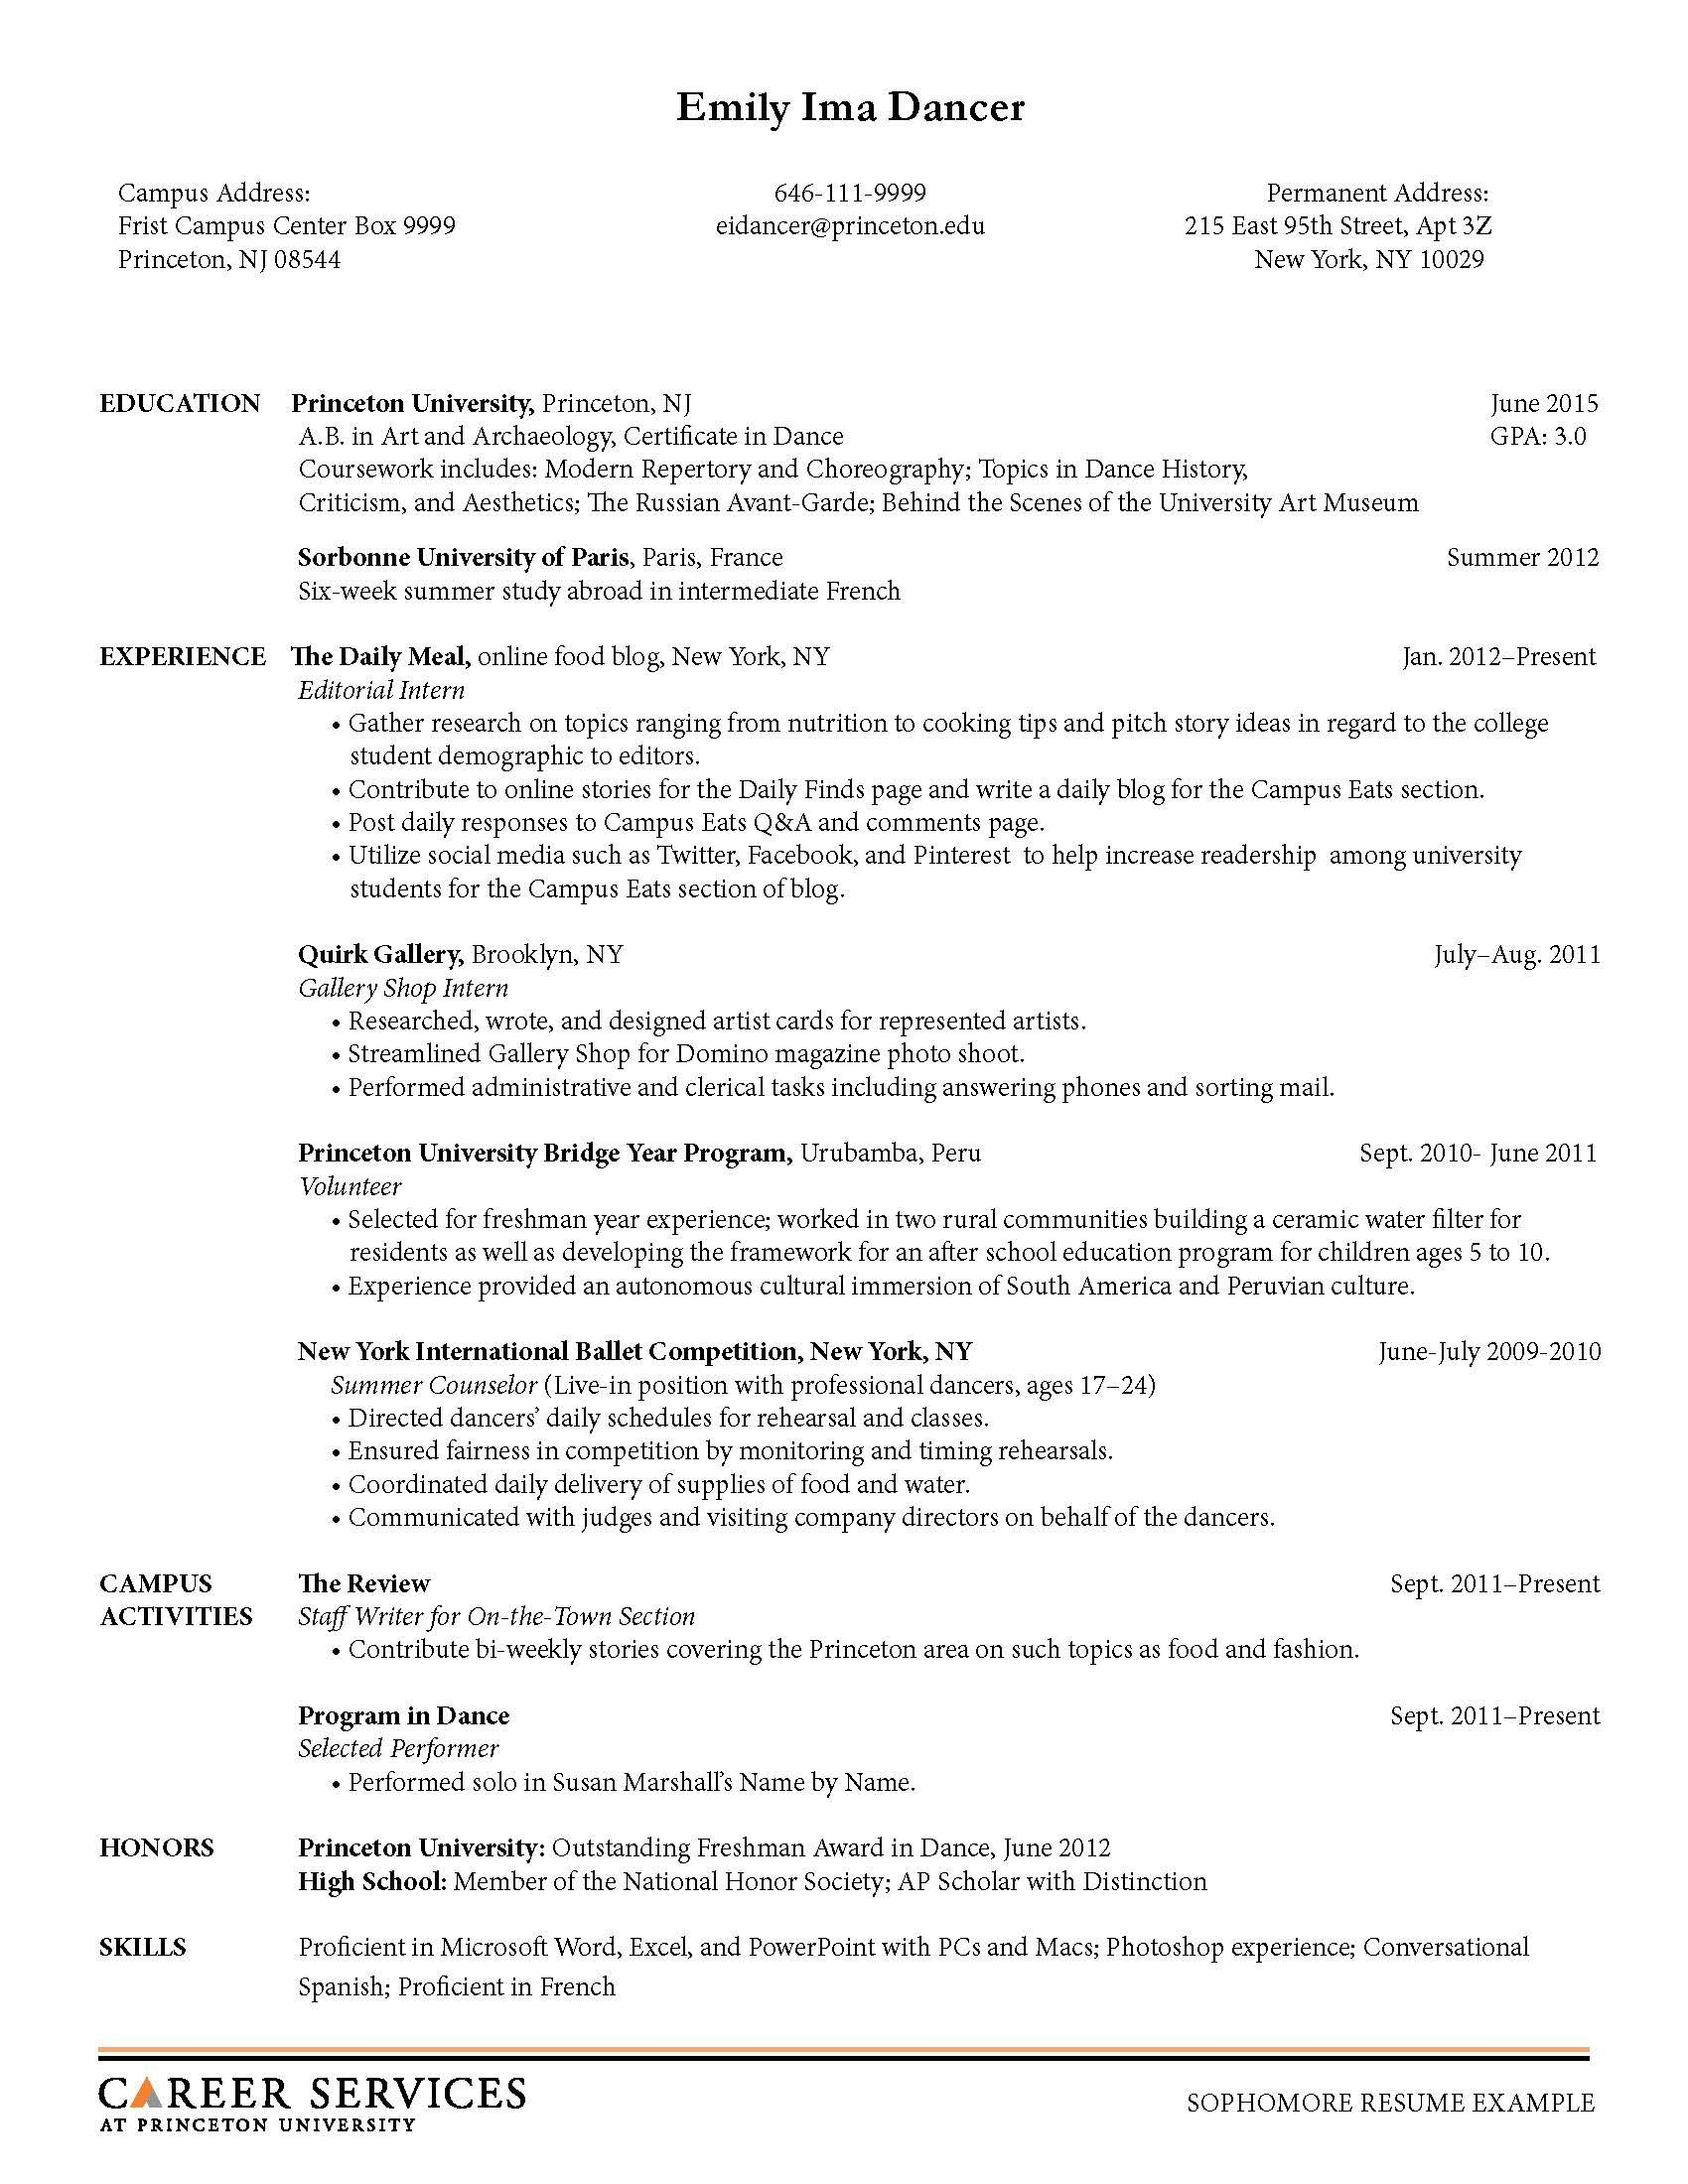 Picnictoimpeachus  Surprising Sample Resume Resume And Career On Pinterest With Extraordinary Resume Services Nyc Besides How To Make A Resume Stand Out Furthermore Construction Manager Resume With Breathtaking Listing References On Resume Also Help Making A Resume In Addition What Font For Resume And Creating Resume As Well As Build Resume Free Additionally Google Docs Resume Builder From Pinterestcom With Picnictoimpeachus  Extraordinary Sample Resume Resume And Career On Pinterest With Breathtaking Resume Services Nyc Besides How To Make A Resume Stand Out Furthermore Construction Manager Resume And Surprising Listing References On Resume Also Help Making A Resume In Addition What Font For Resume From Pinterestcom